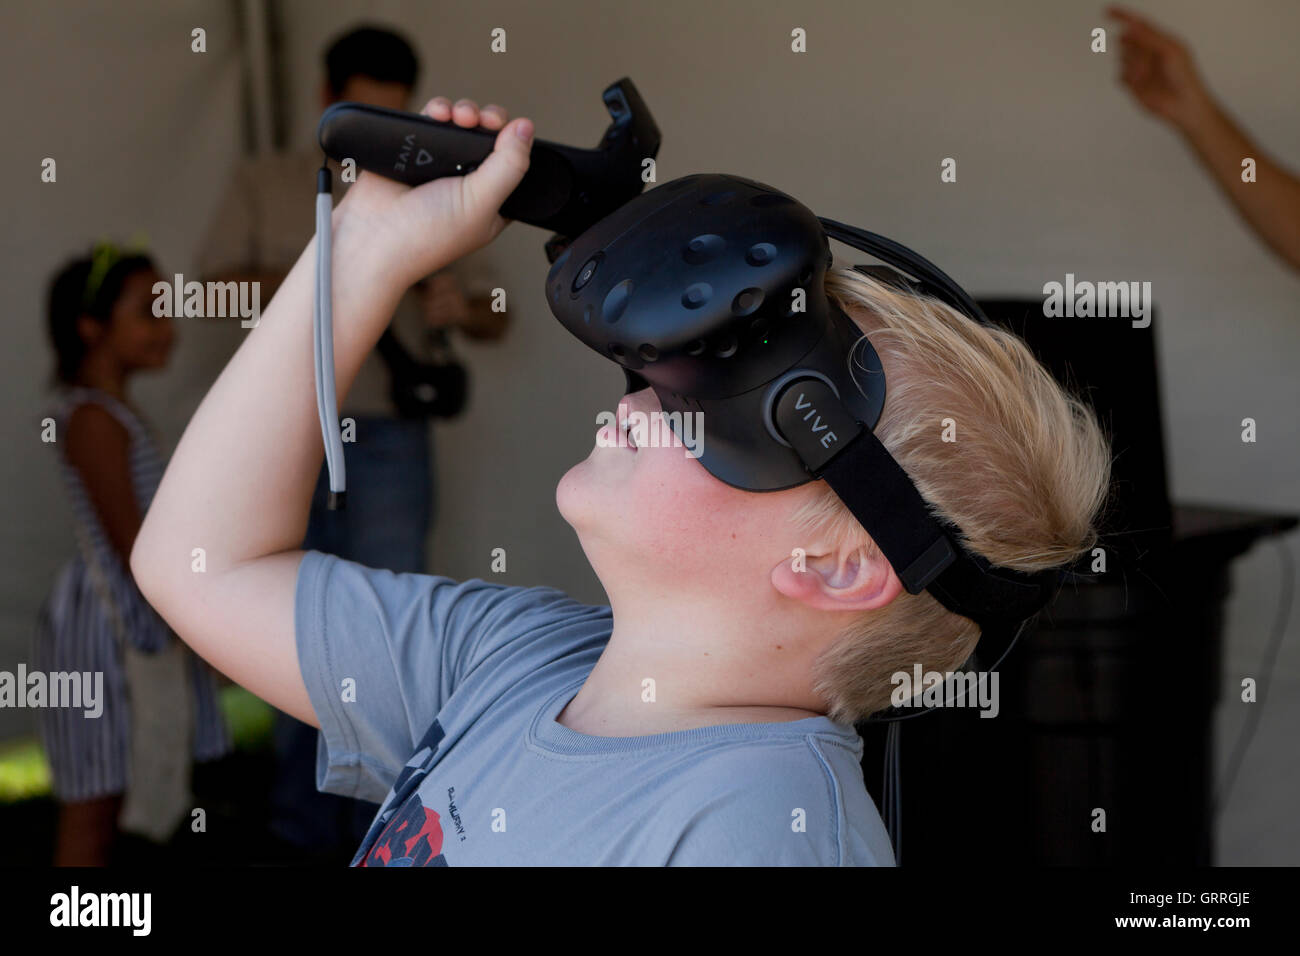 Child wearing VR headset (VR goggles) using bluetooth controller - USA - Stock Image